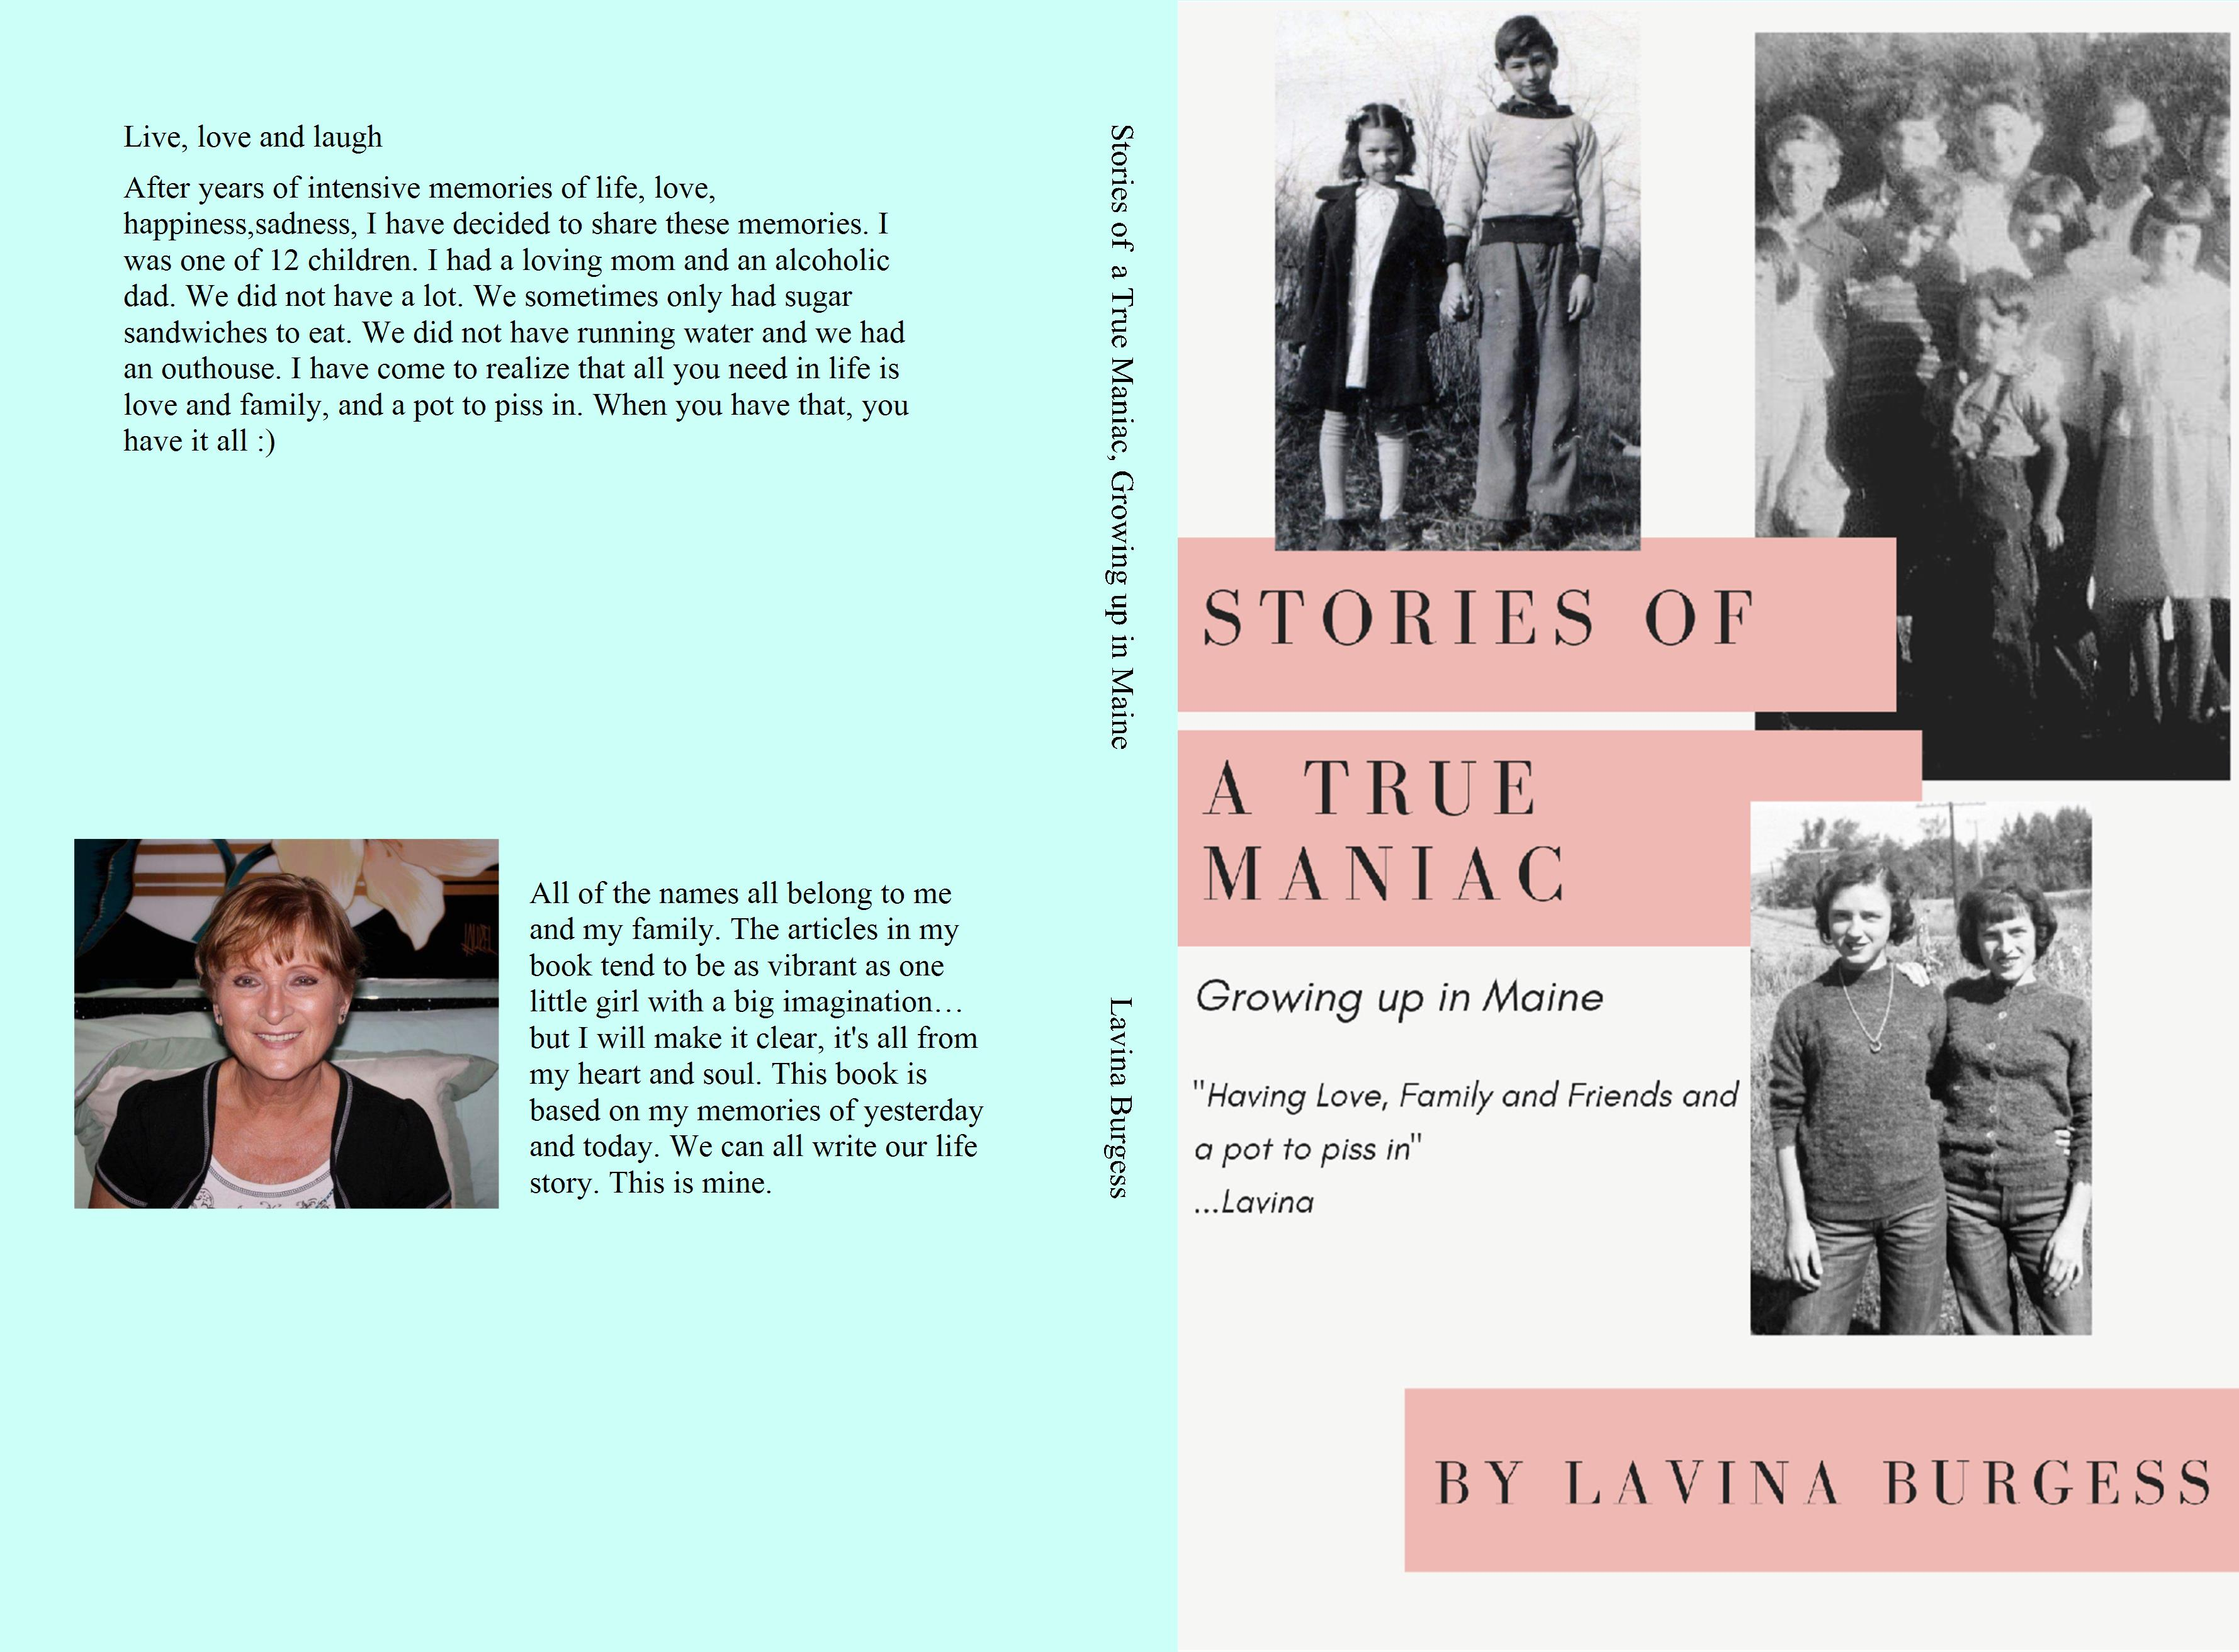 Stories of a True Maniac, Growing up in Maine cover image